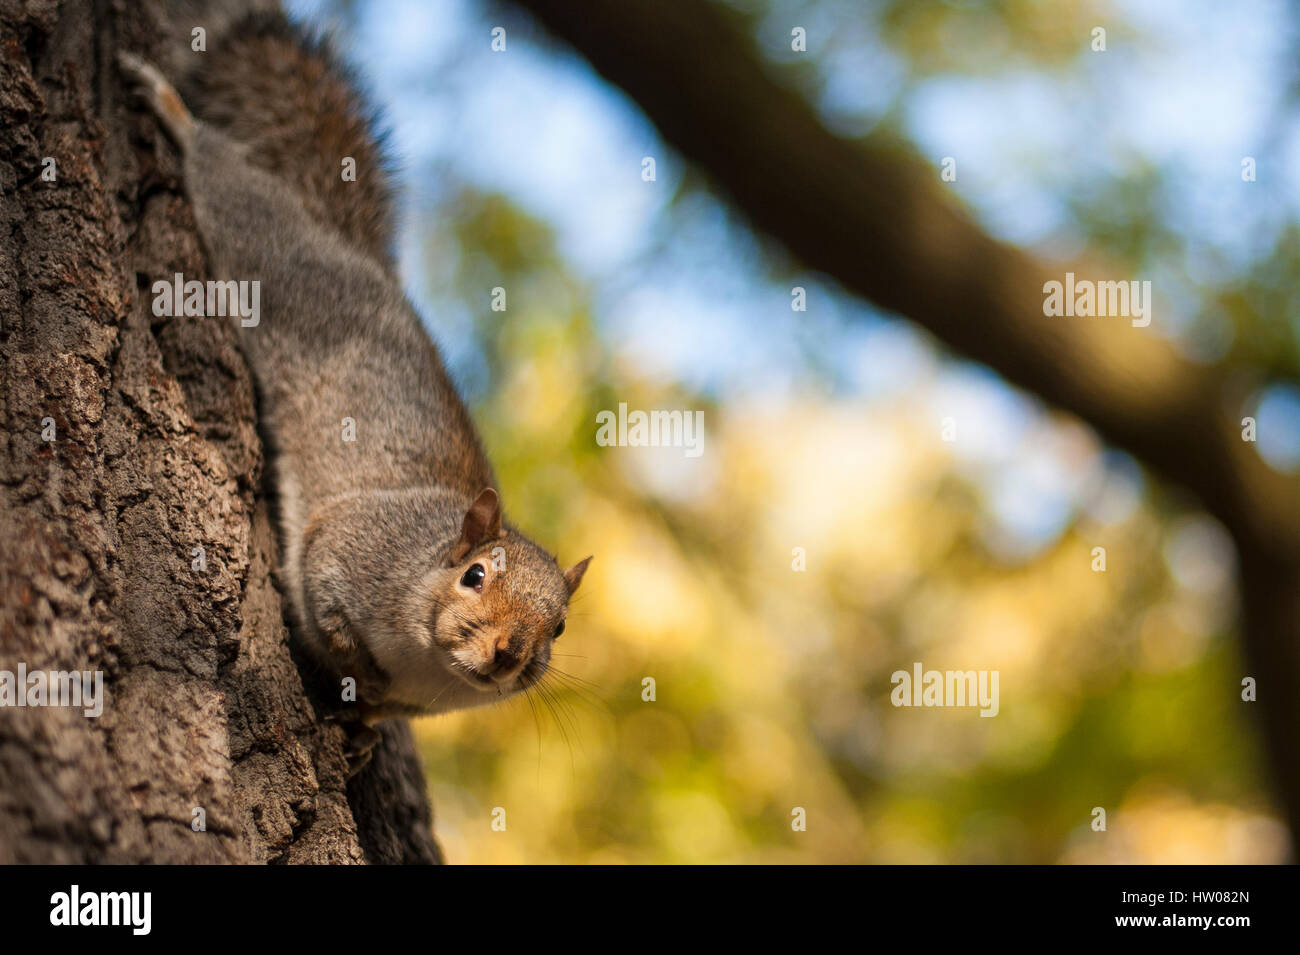 Beautiful cute squirrel in Hyde Park in London walking on the branch of a tree at sunset - Stock Image